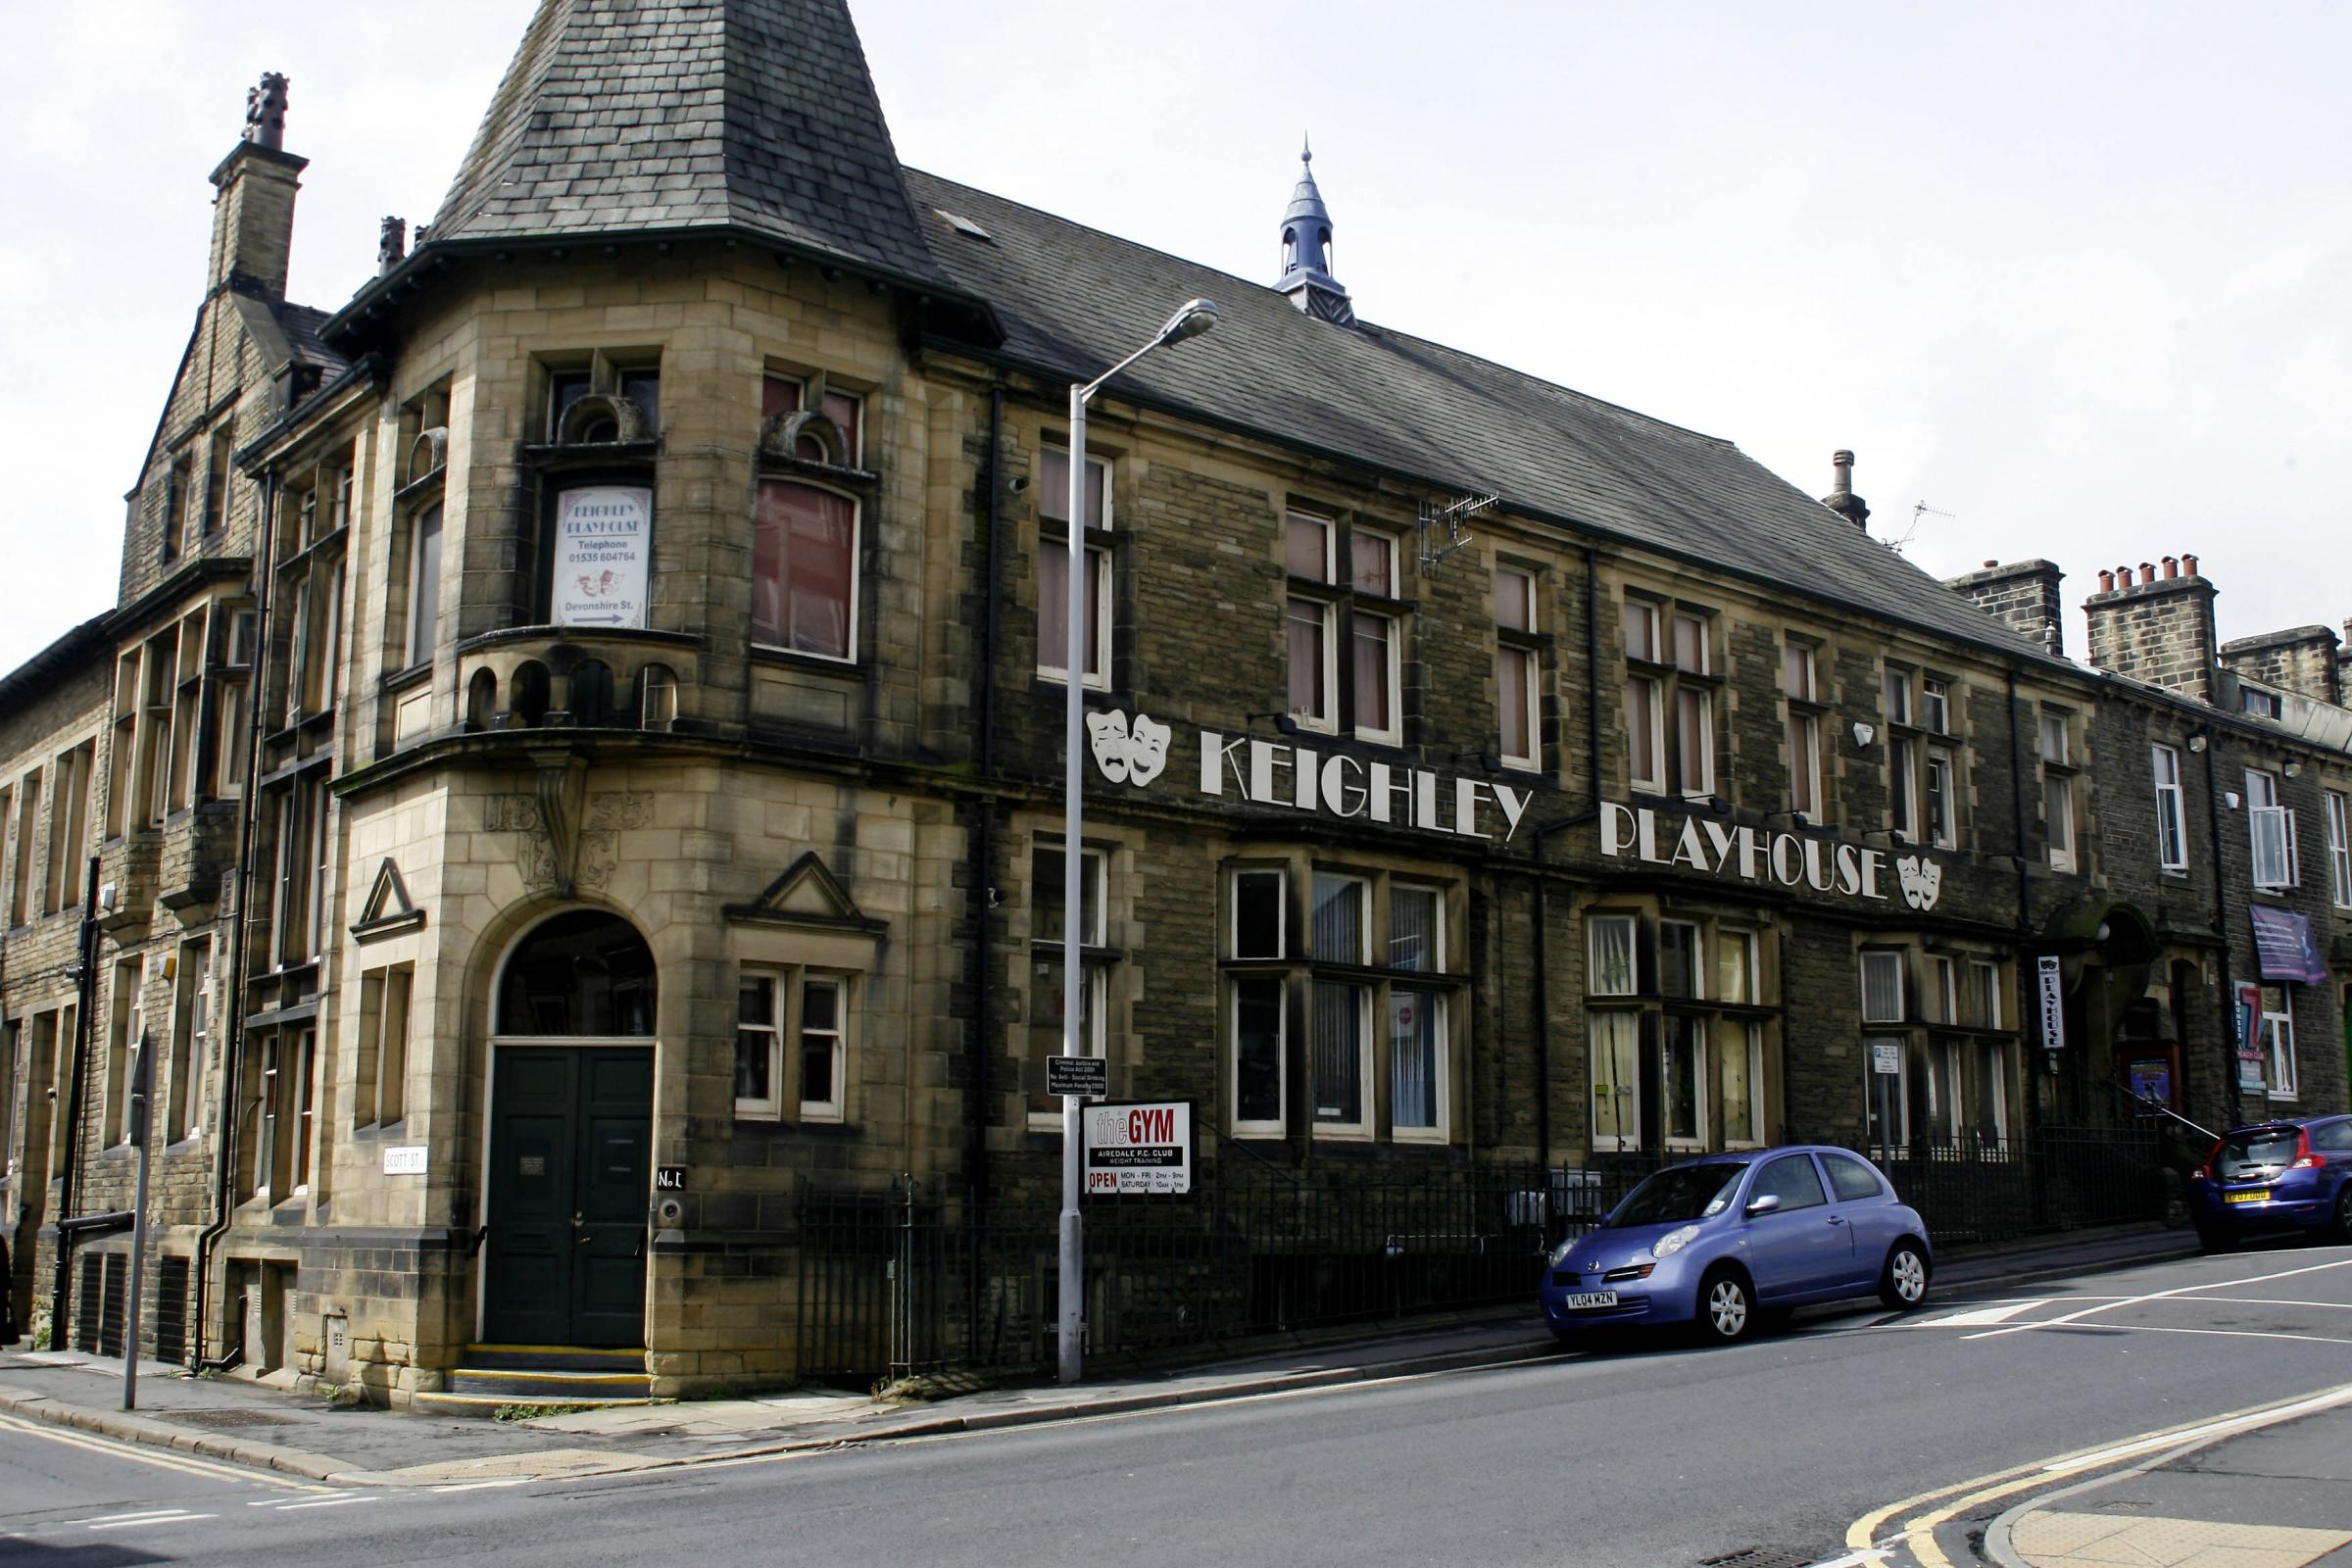 Keighley Playhouse